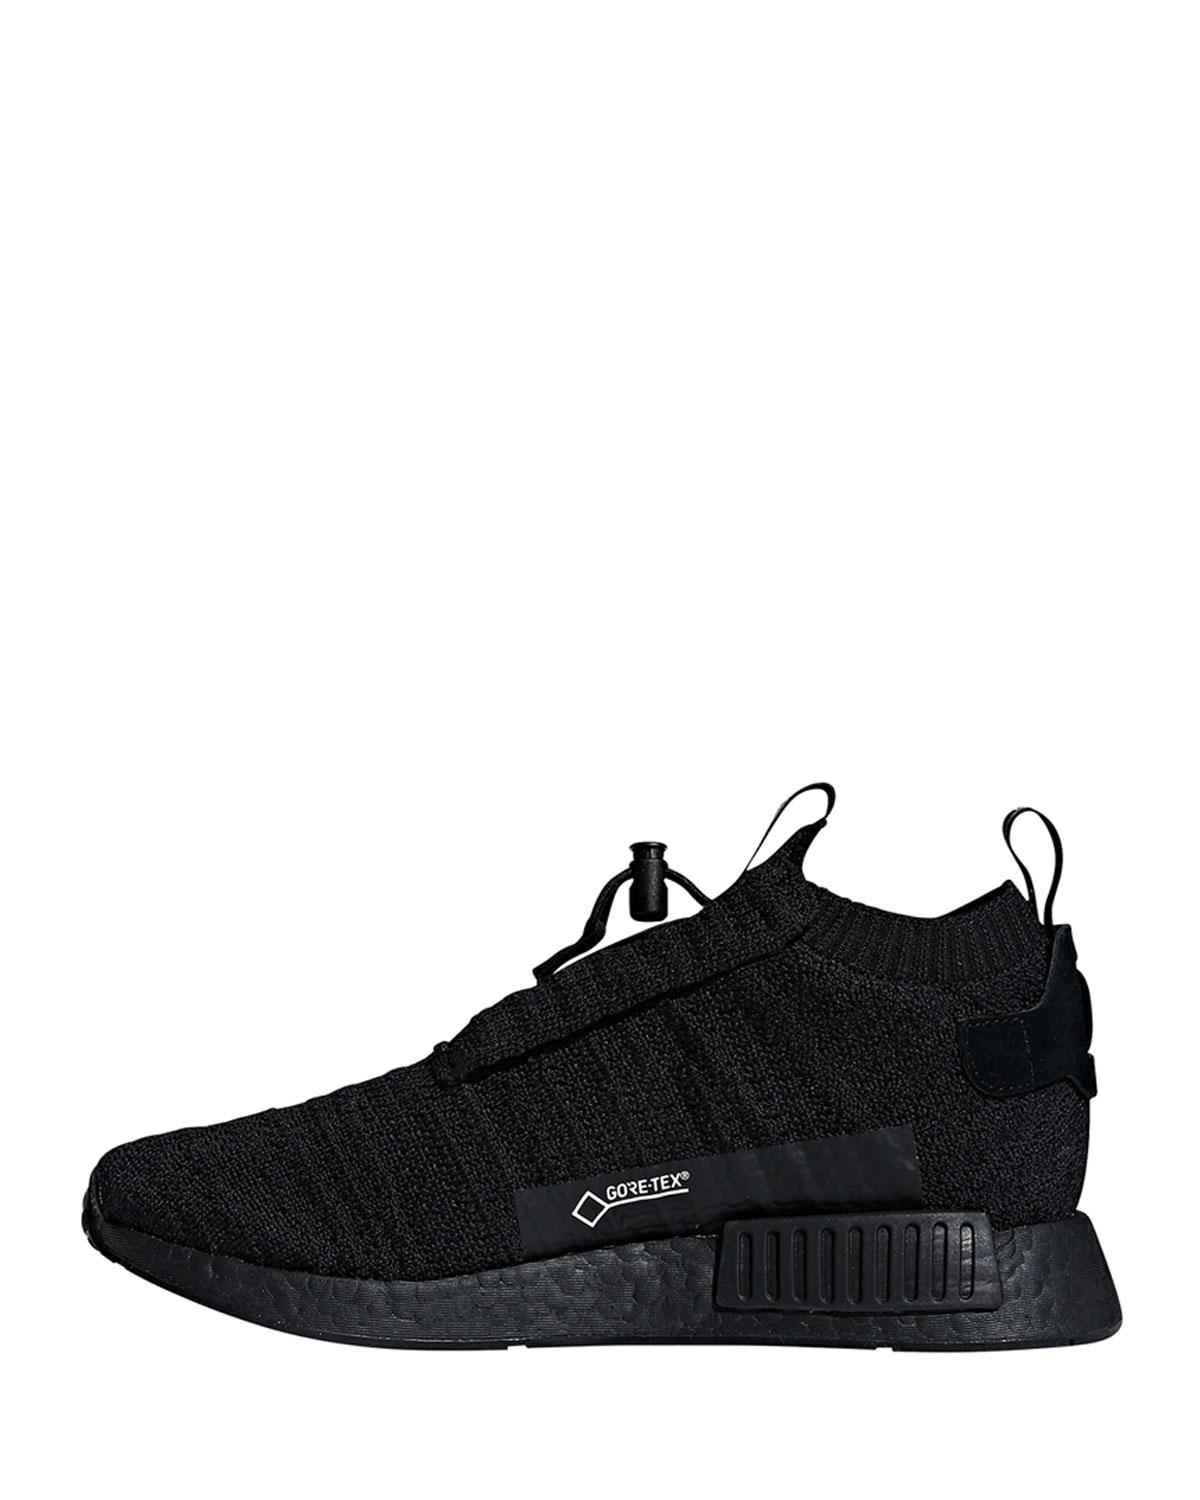 4911cd57fc3dc Lyst - adidas Men s Nmd Ts1 Primeknit Trainer Sneakers in Black for Men